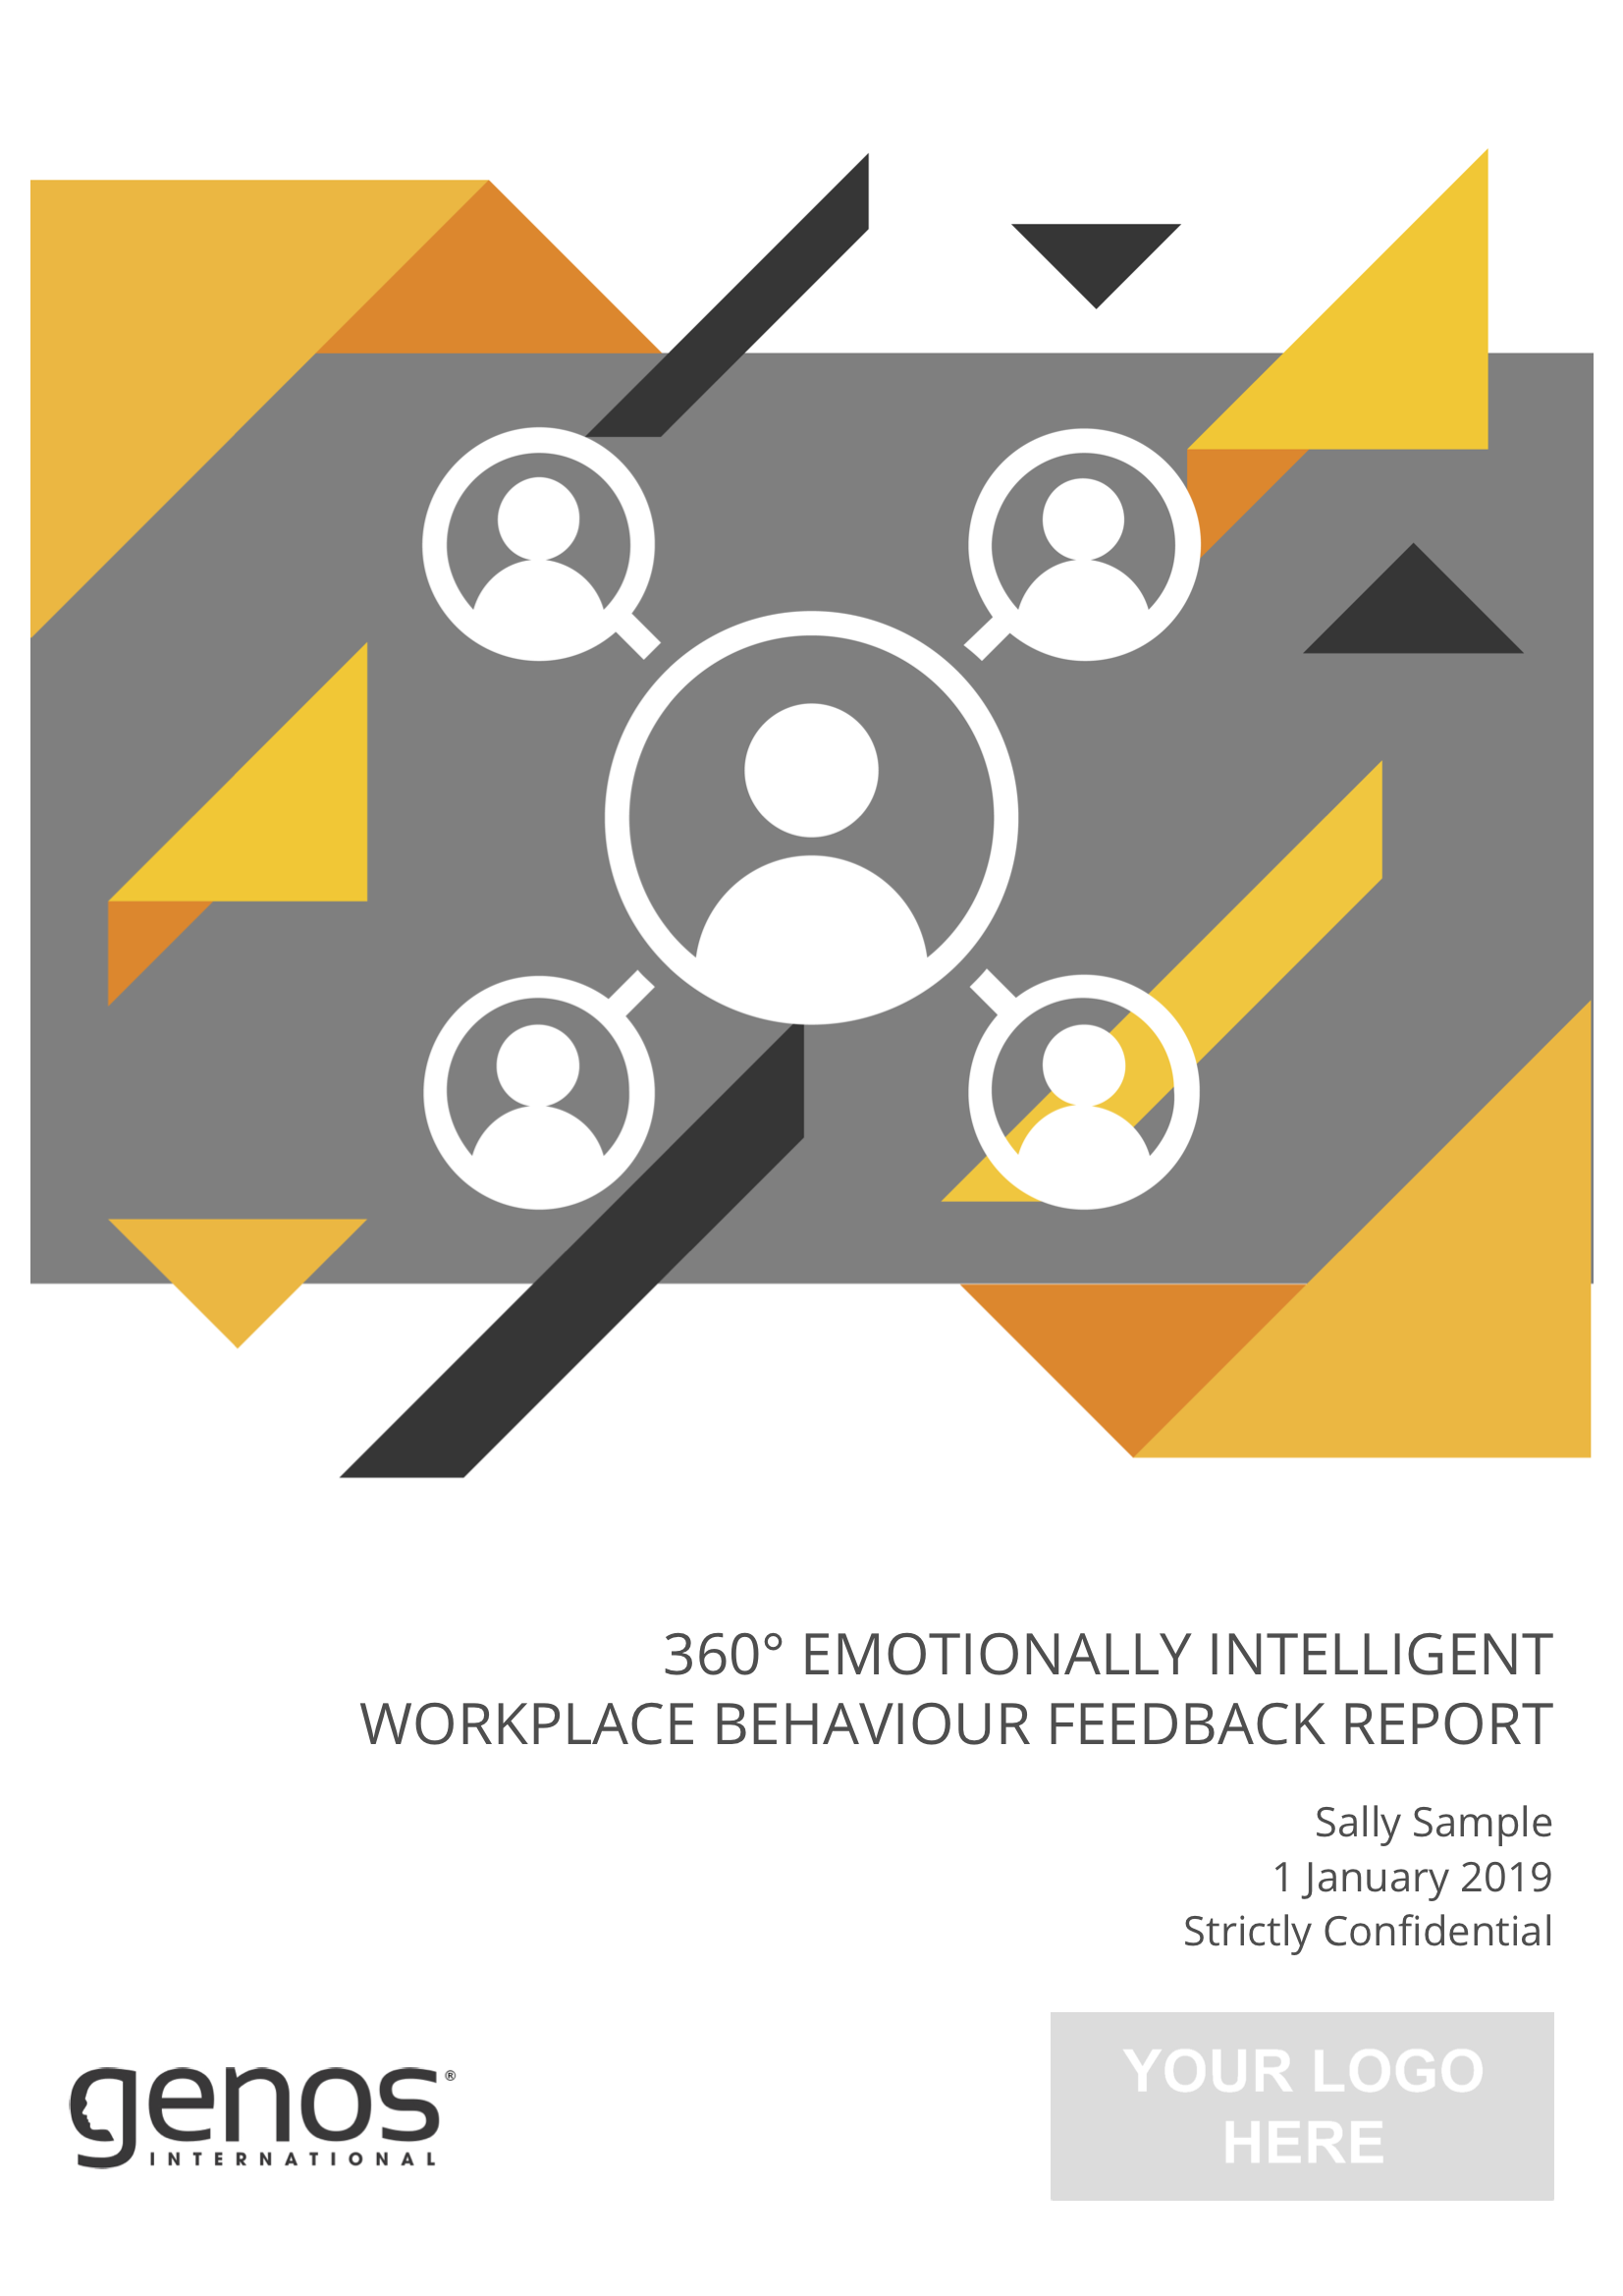 1. Your own 360° EI Workplace Behaviour Assessment